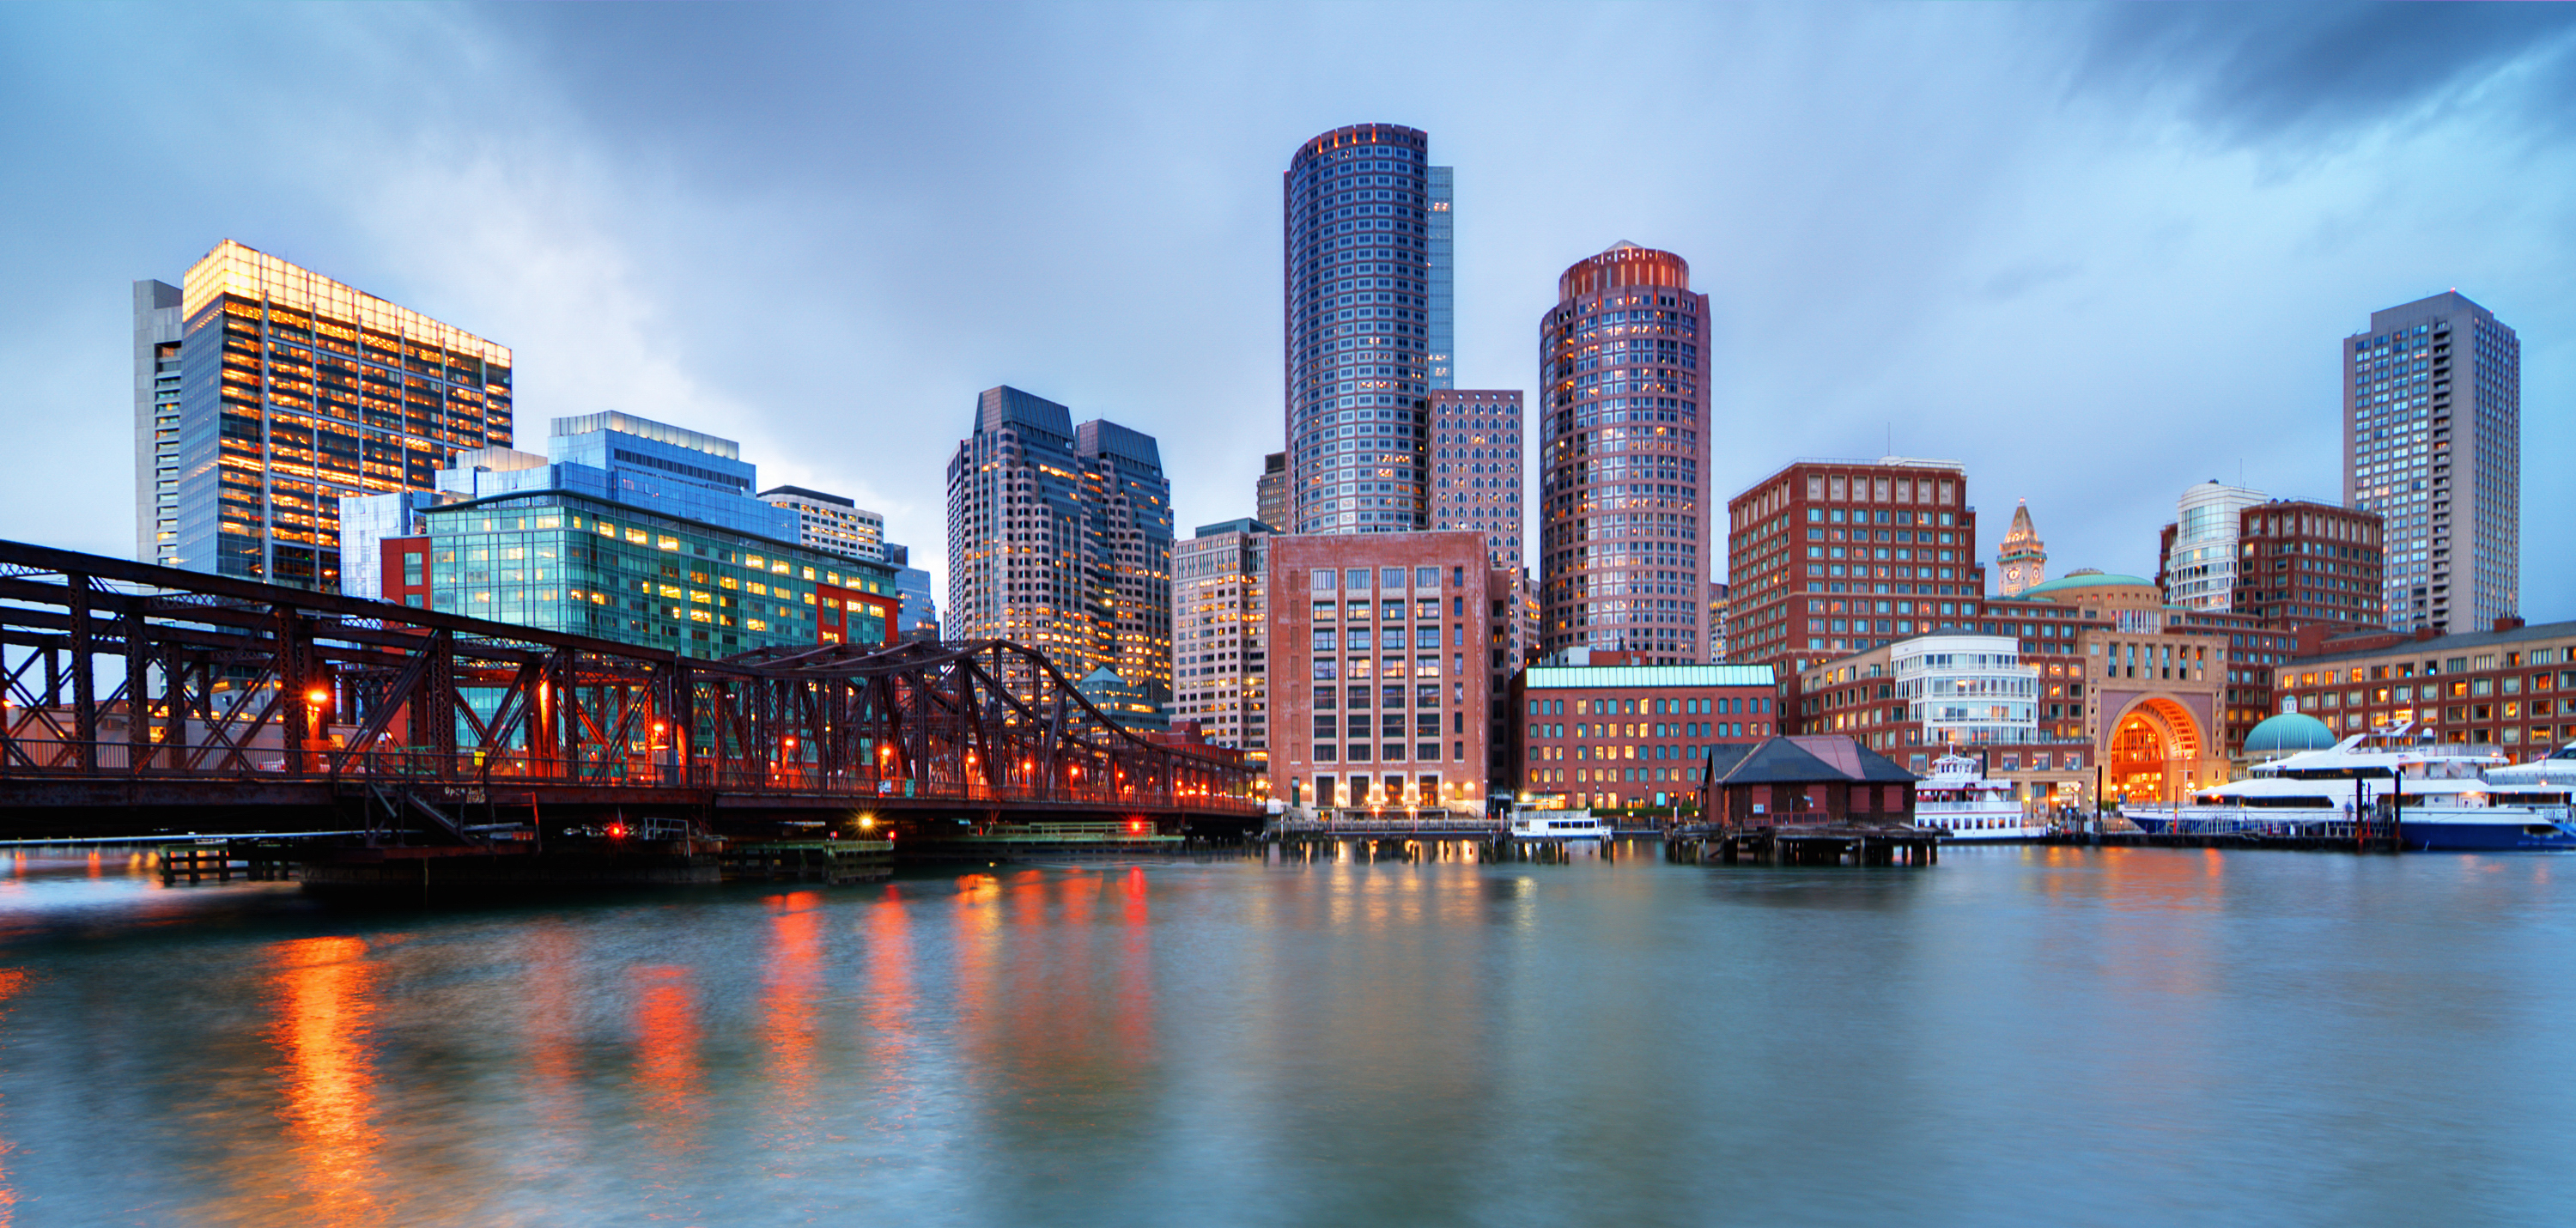 A view of the Boston skyline, featuring Financial District skyscrapers, water, and a cloudy gray sky